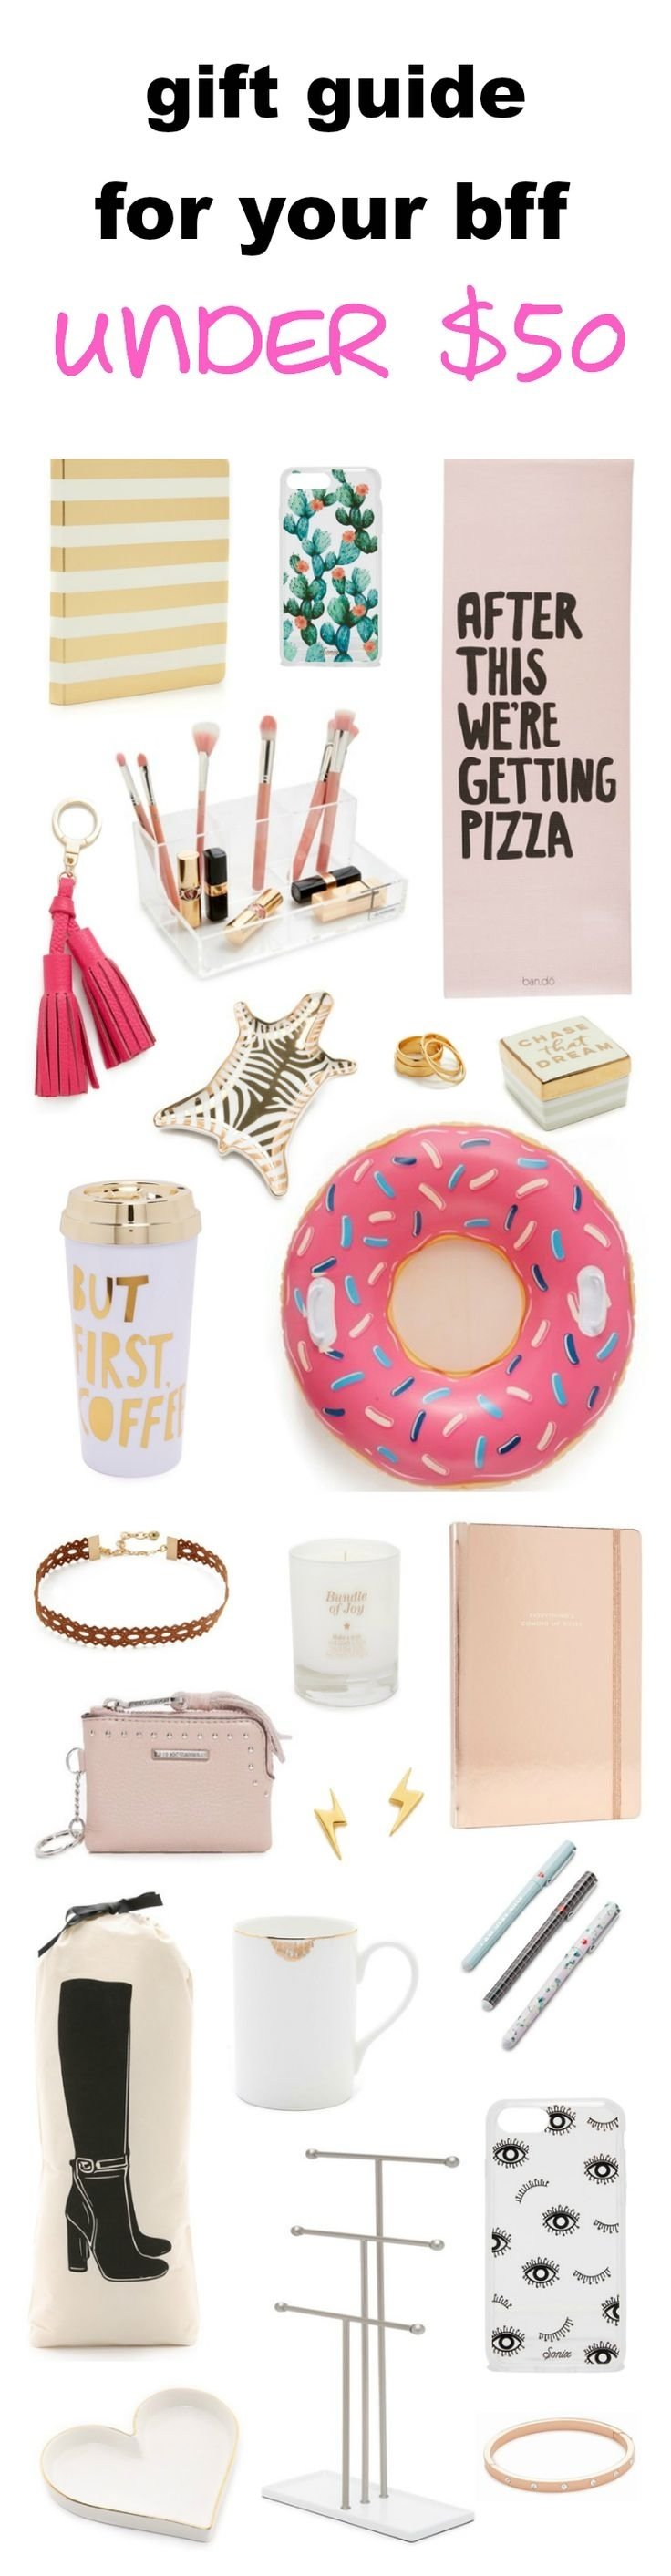 10 Stylish Best Gift Ideas For Her 329 best gift ideas for her images on pinterest christmas presents 2020